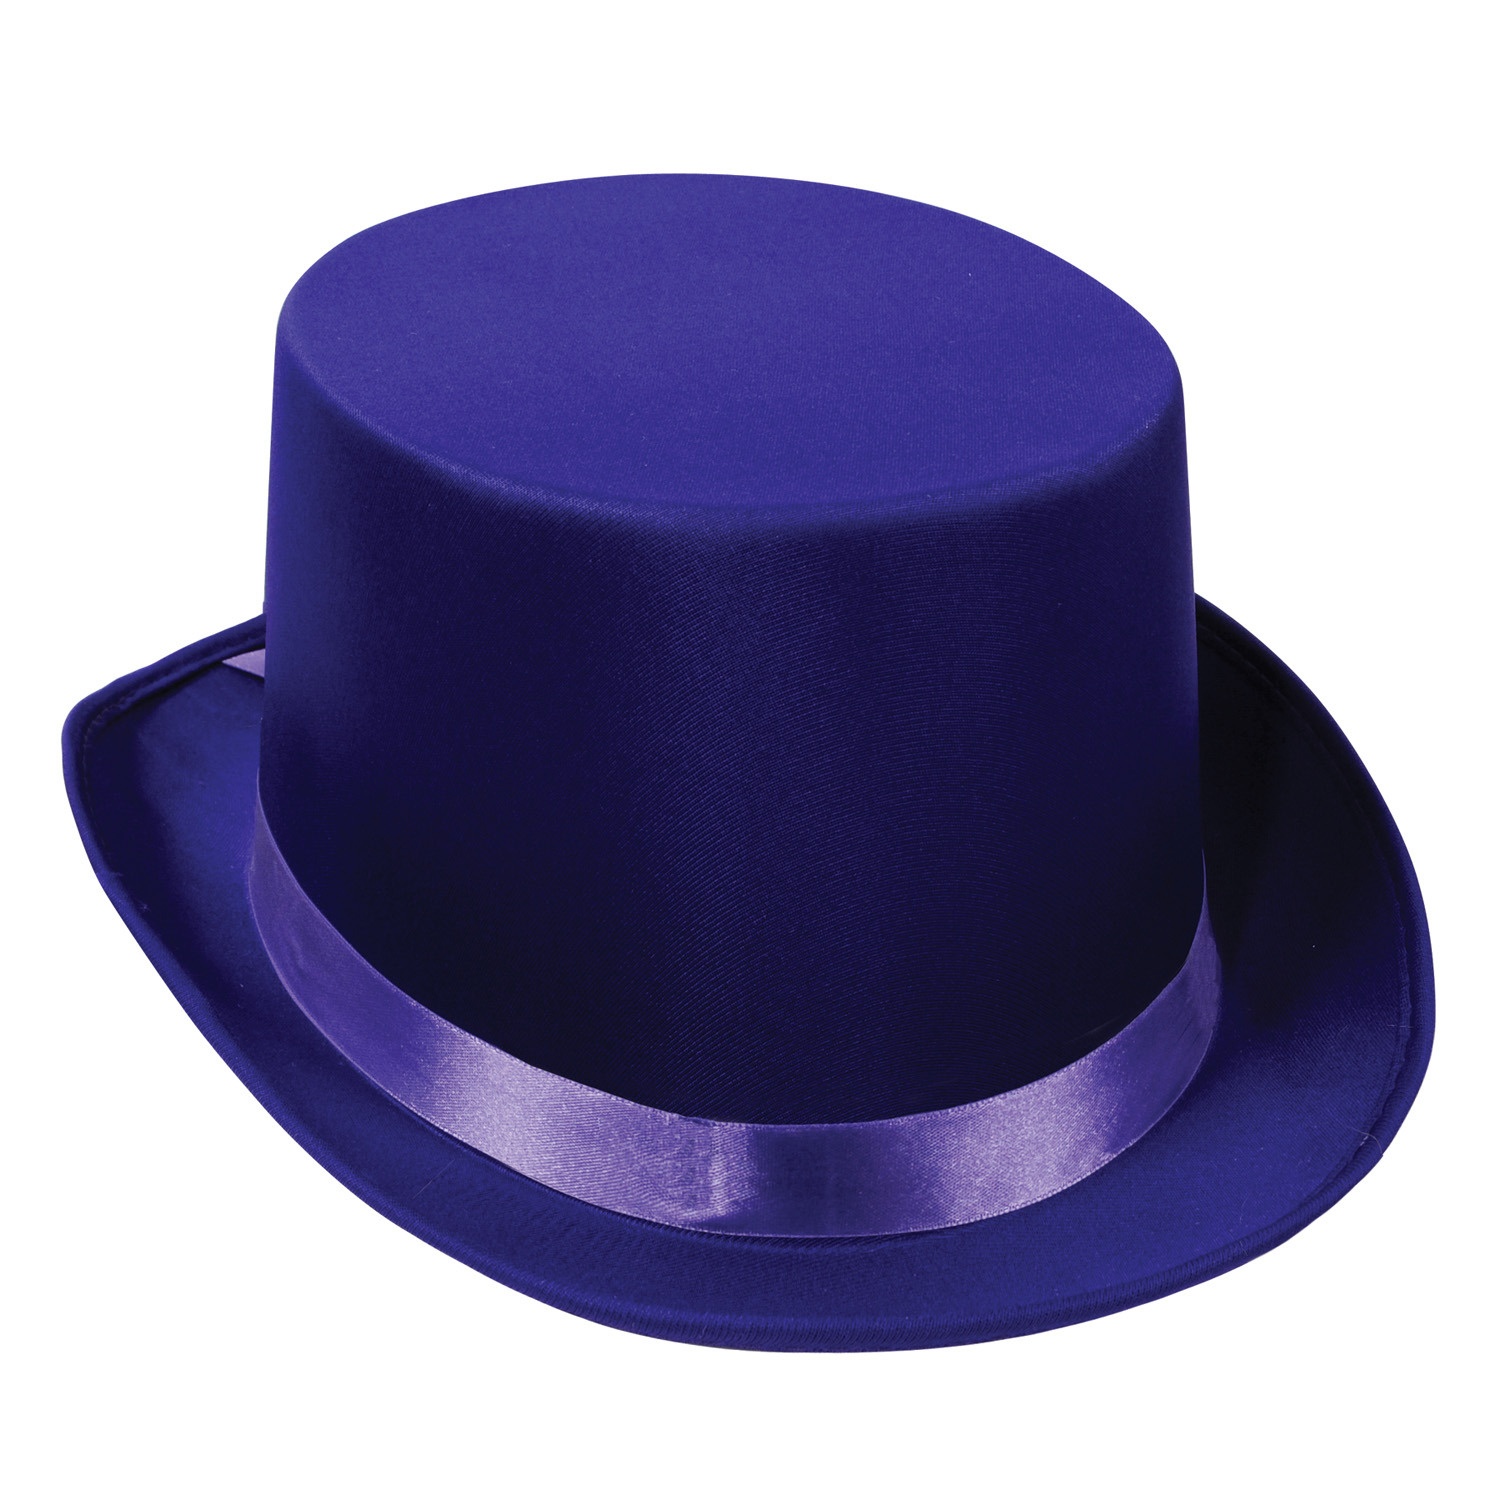 Satin Sleek Top Hat (Pack of 6) Top Hat, Cloth Hat, Upscale party favors, Mardi Gras, New Years Eve, Wearable, Purple, Purple hats, Wholesale party supplies, Bulk party favors, Satin Sleek Hats